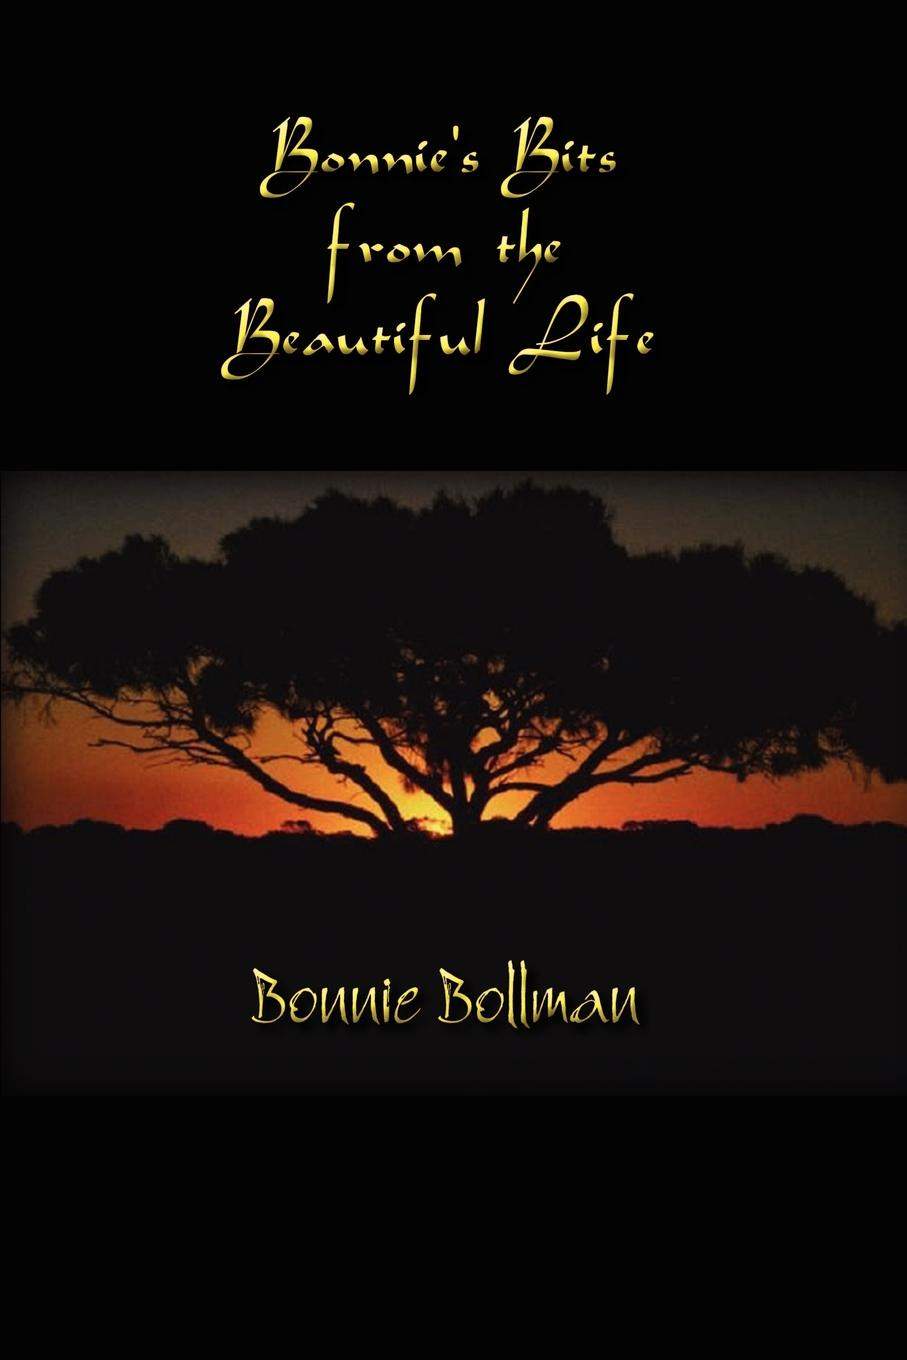 Bonnie Bollman Bonnies Bits from the Beautiful Life